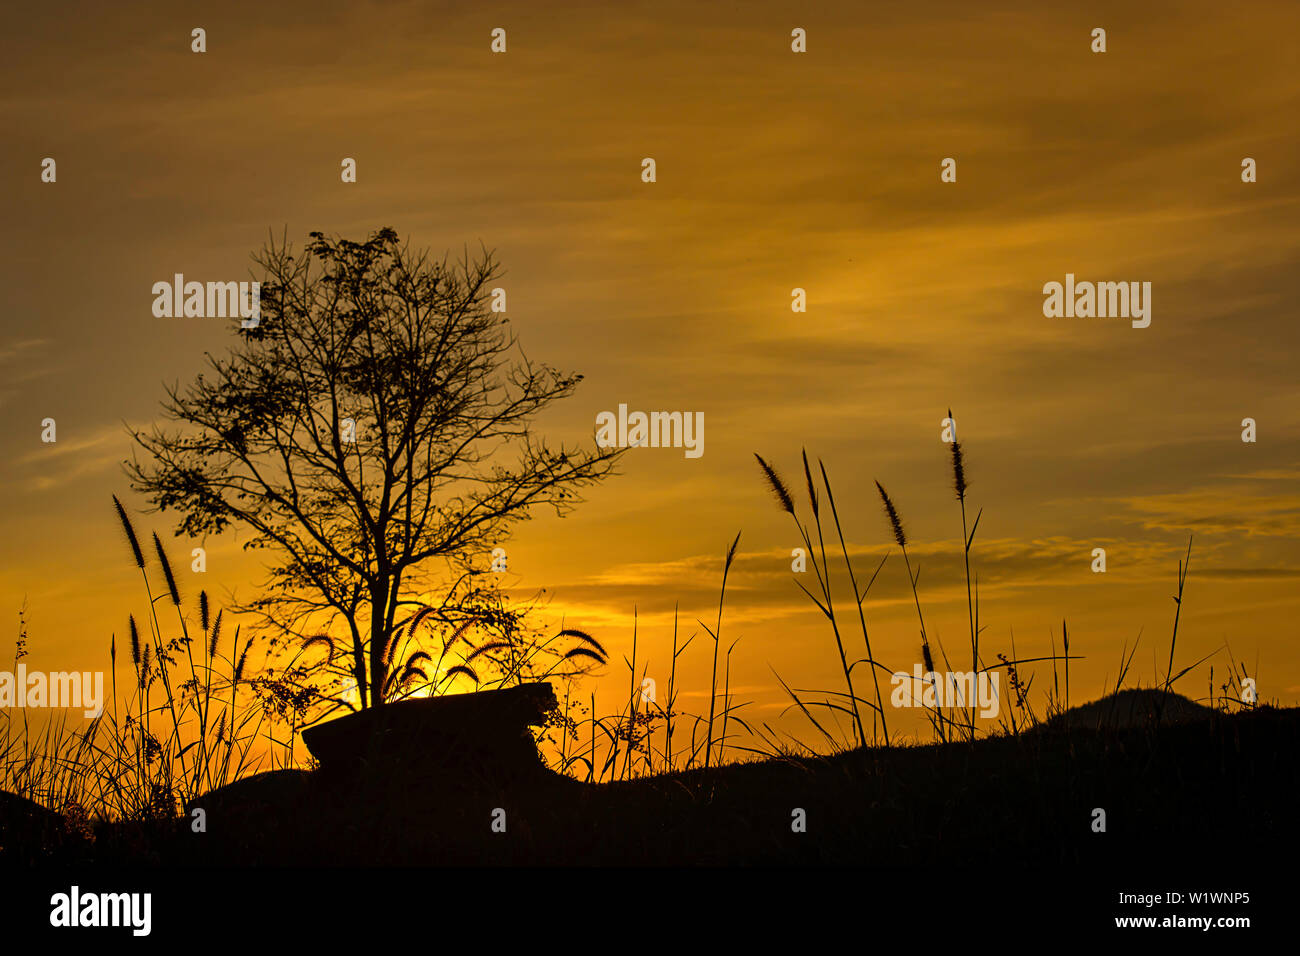 The morning sun light behind the mountains and the tree. Stock Photo